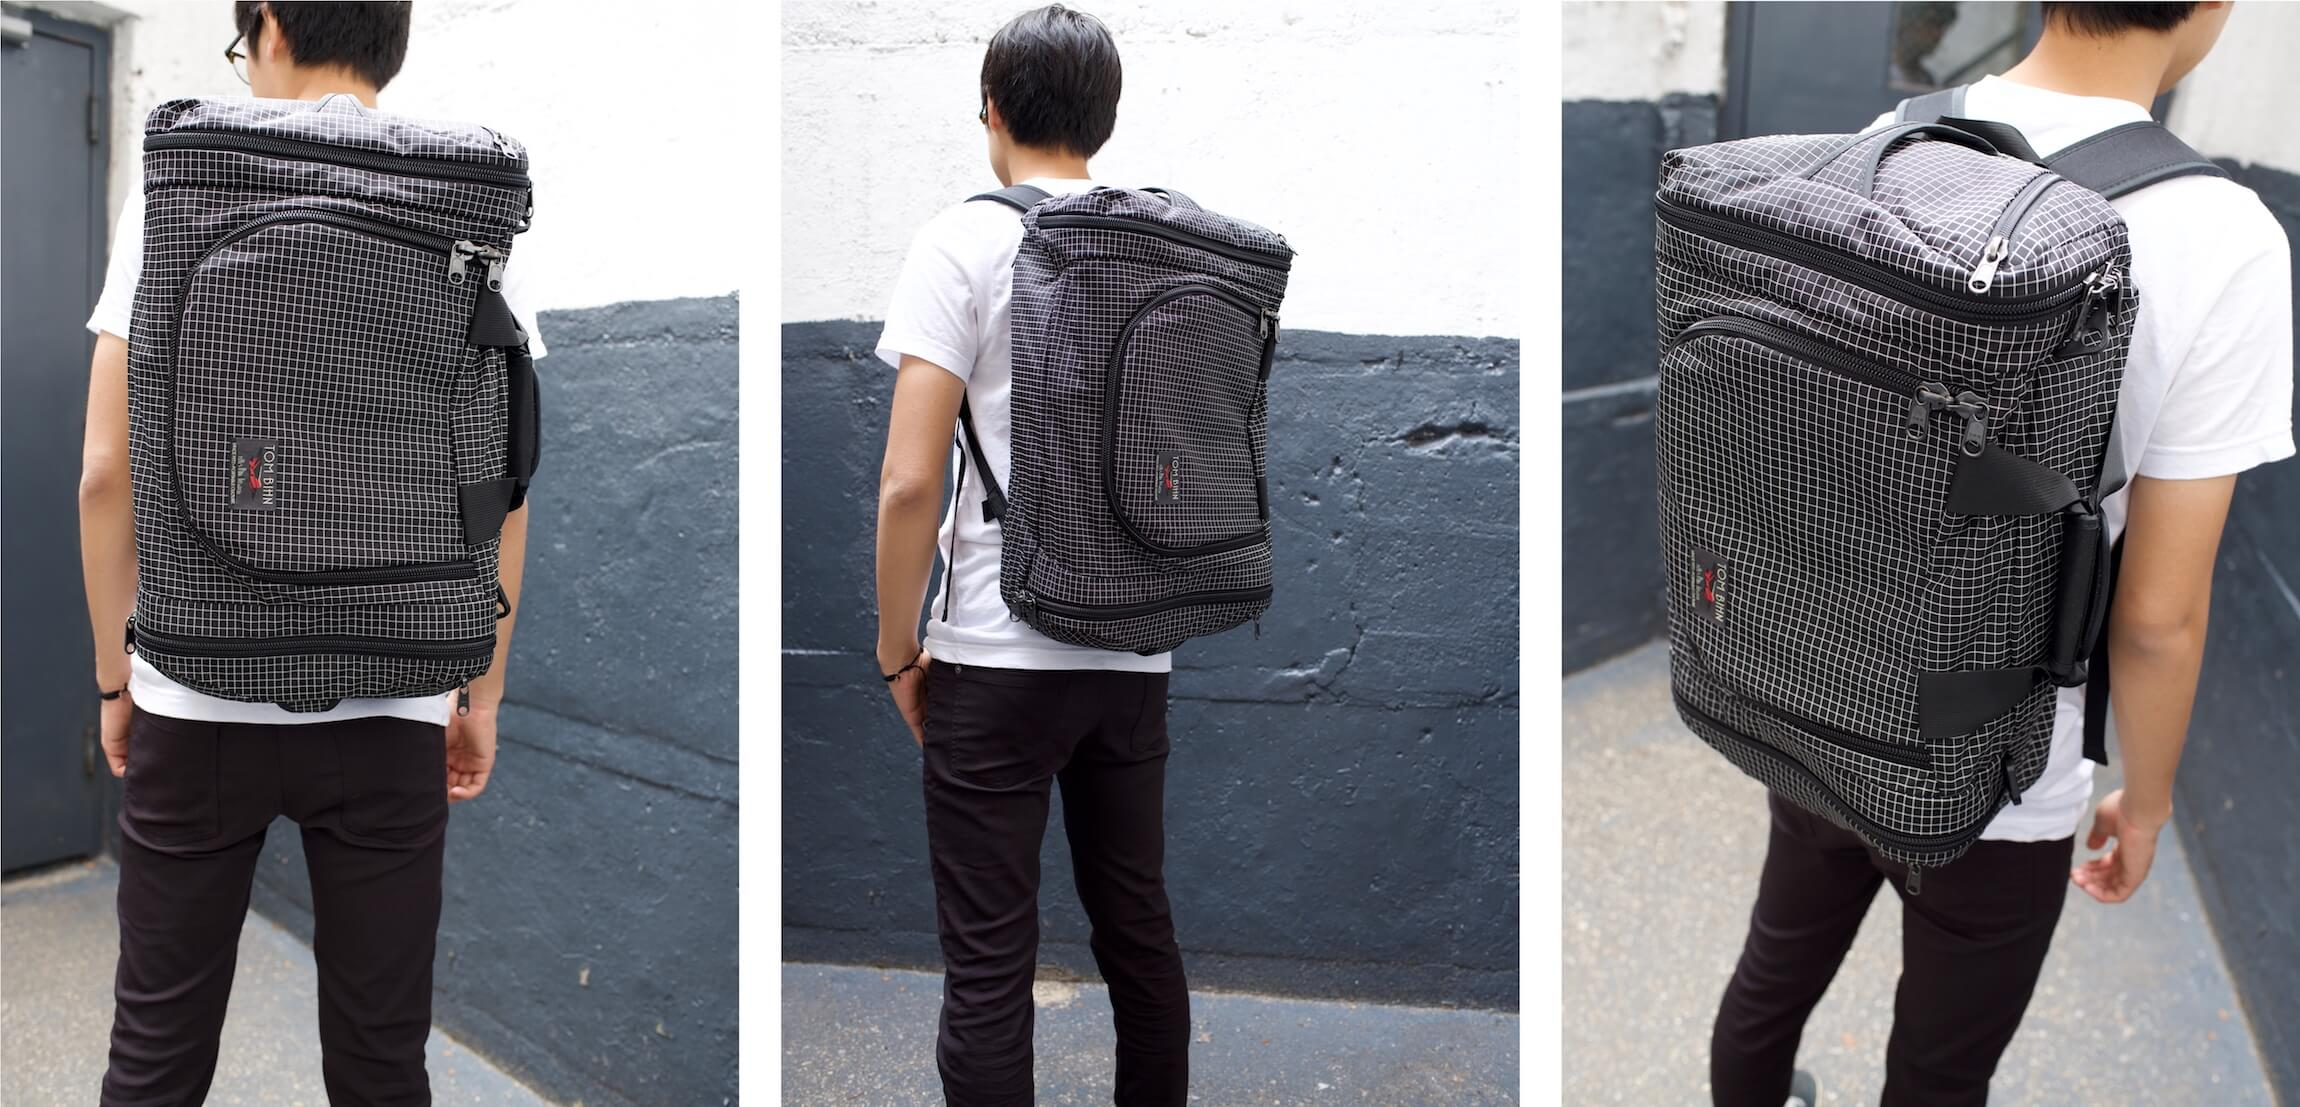 The Tom Bihn Aeronaut 30 Backpack viewed from 3 angles